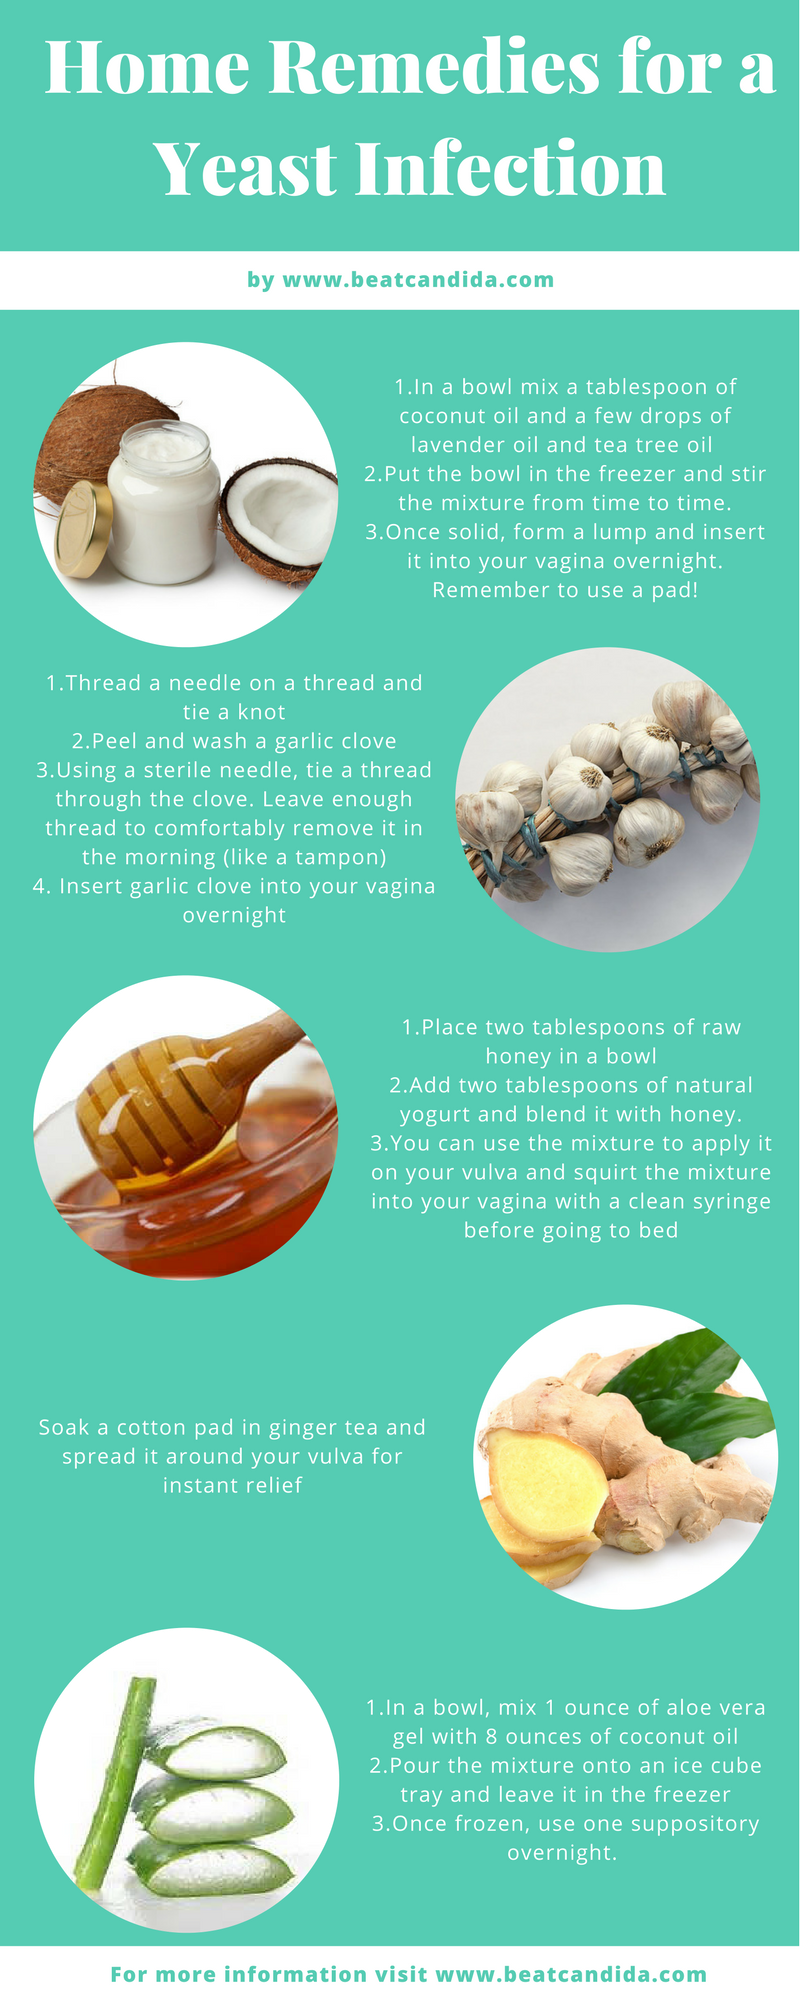 How To Prepare Home Remedies For Vaginal Yeast Infection?